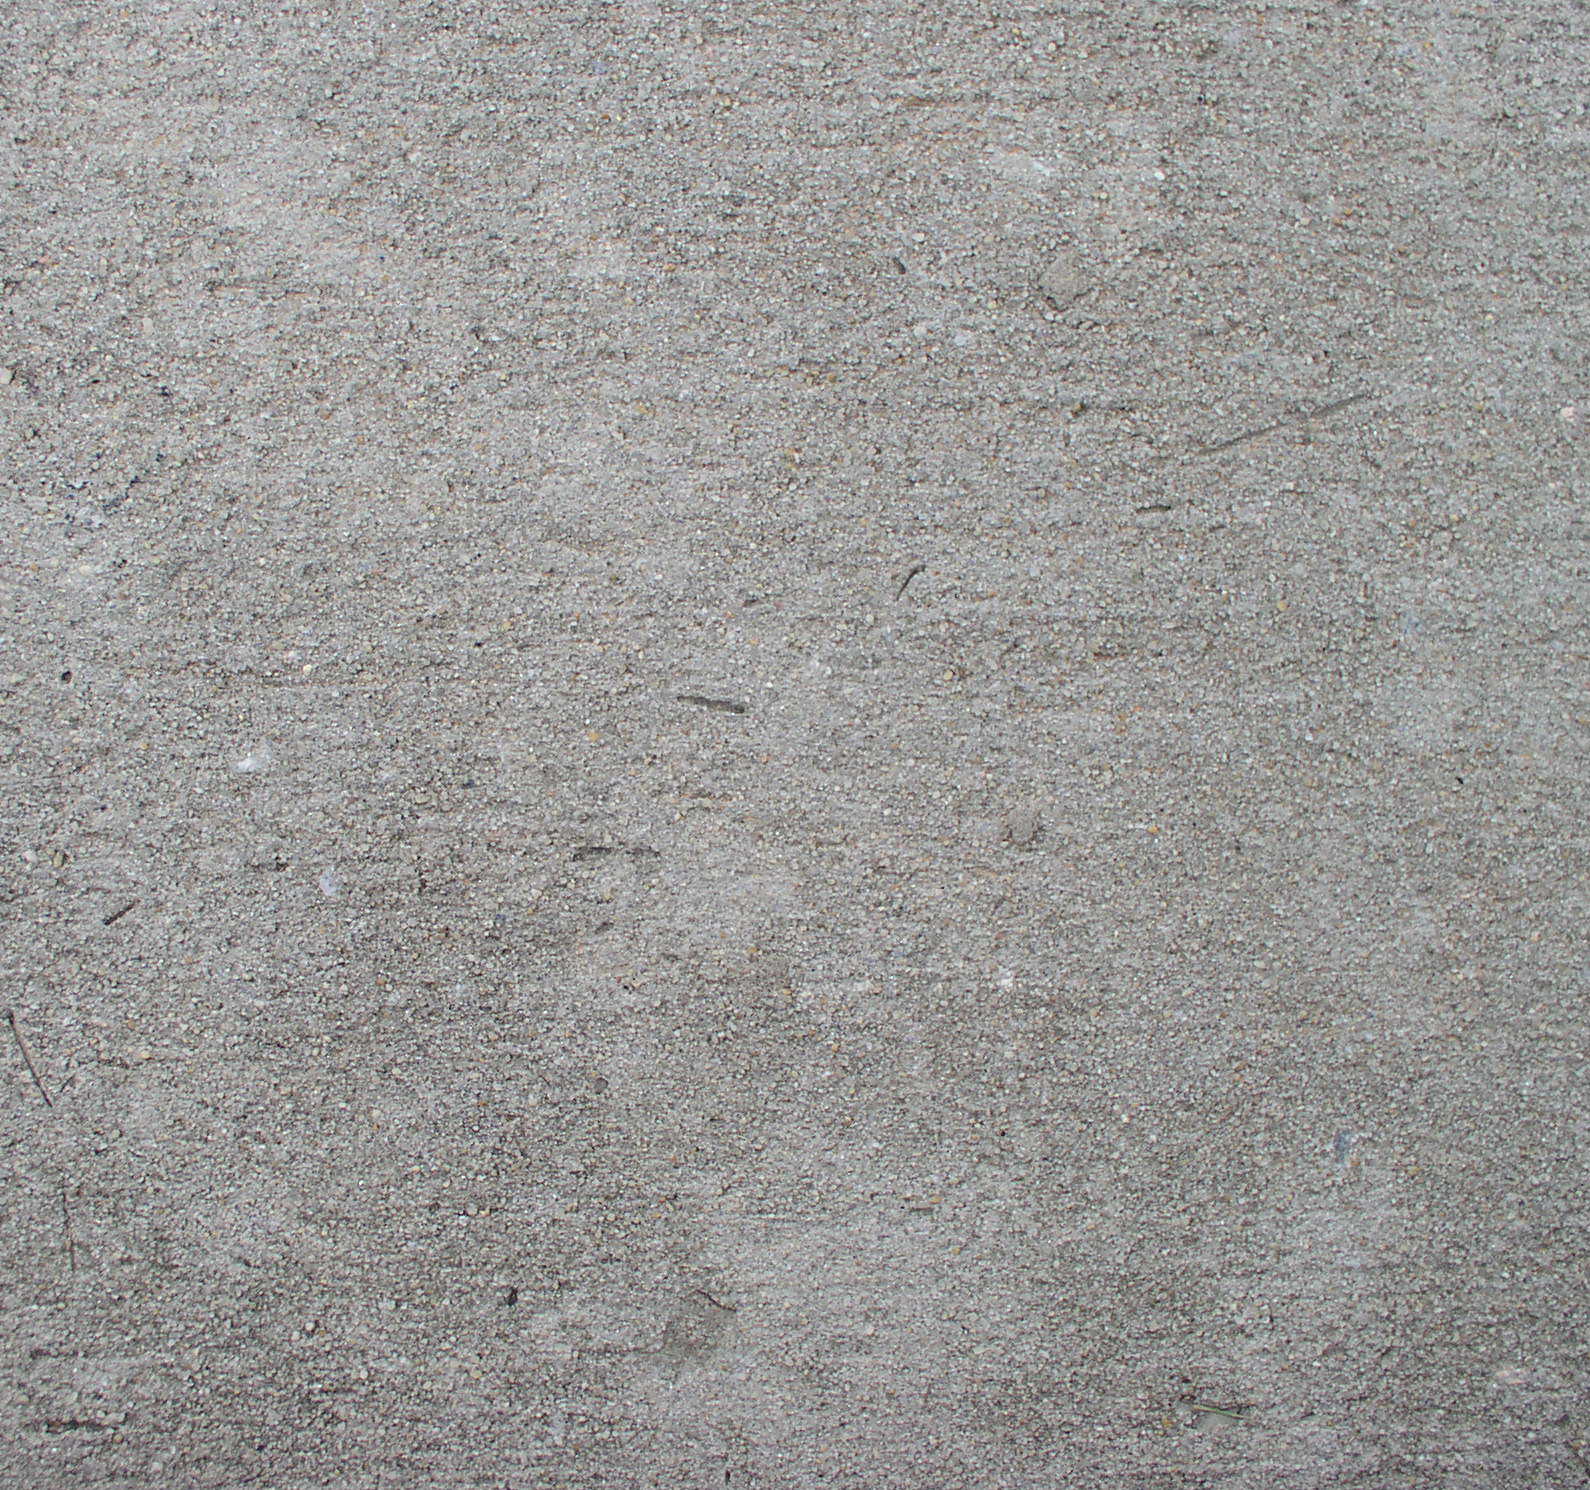 Concrete wall stucco download photo background beton How to finish a concrete wall